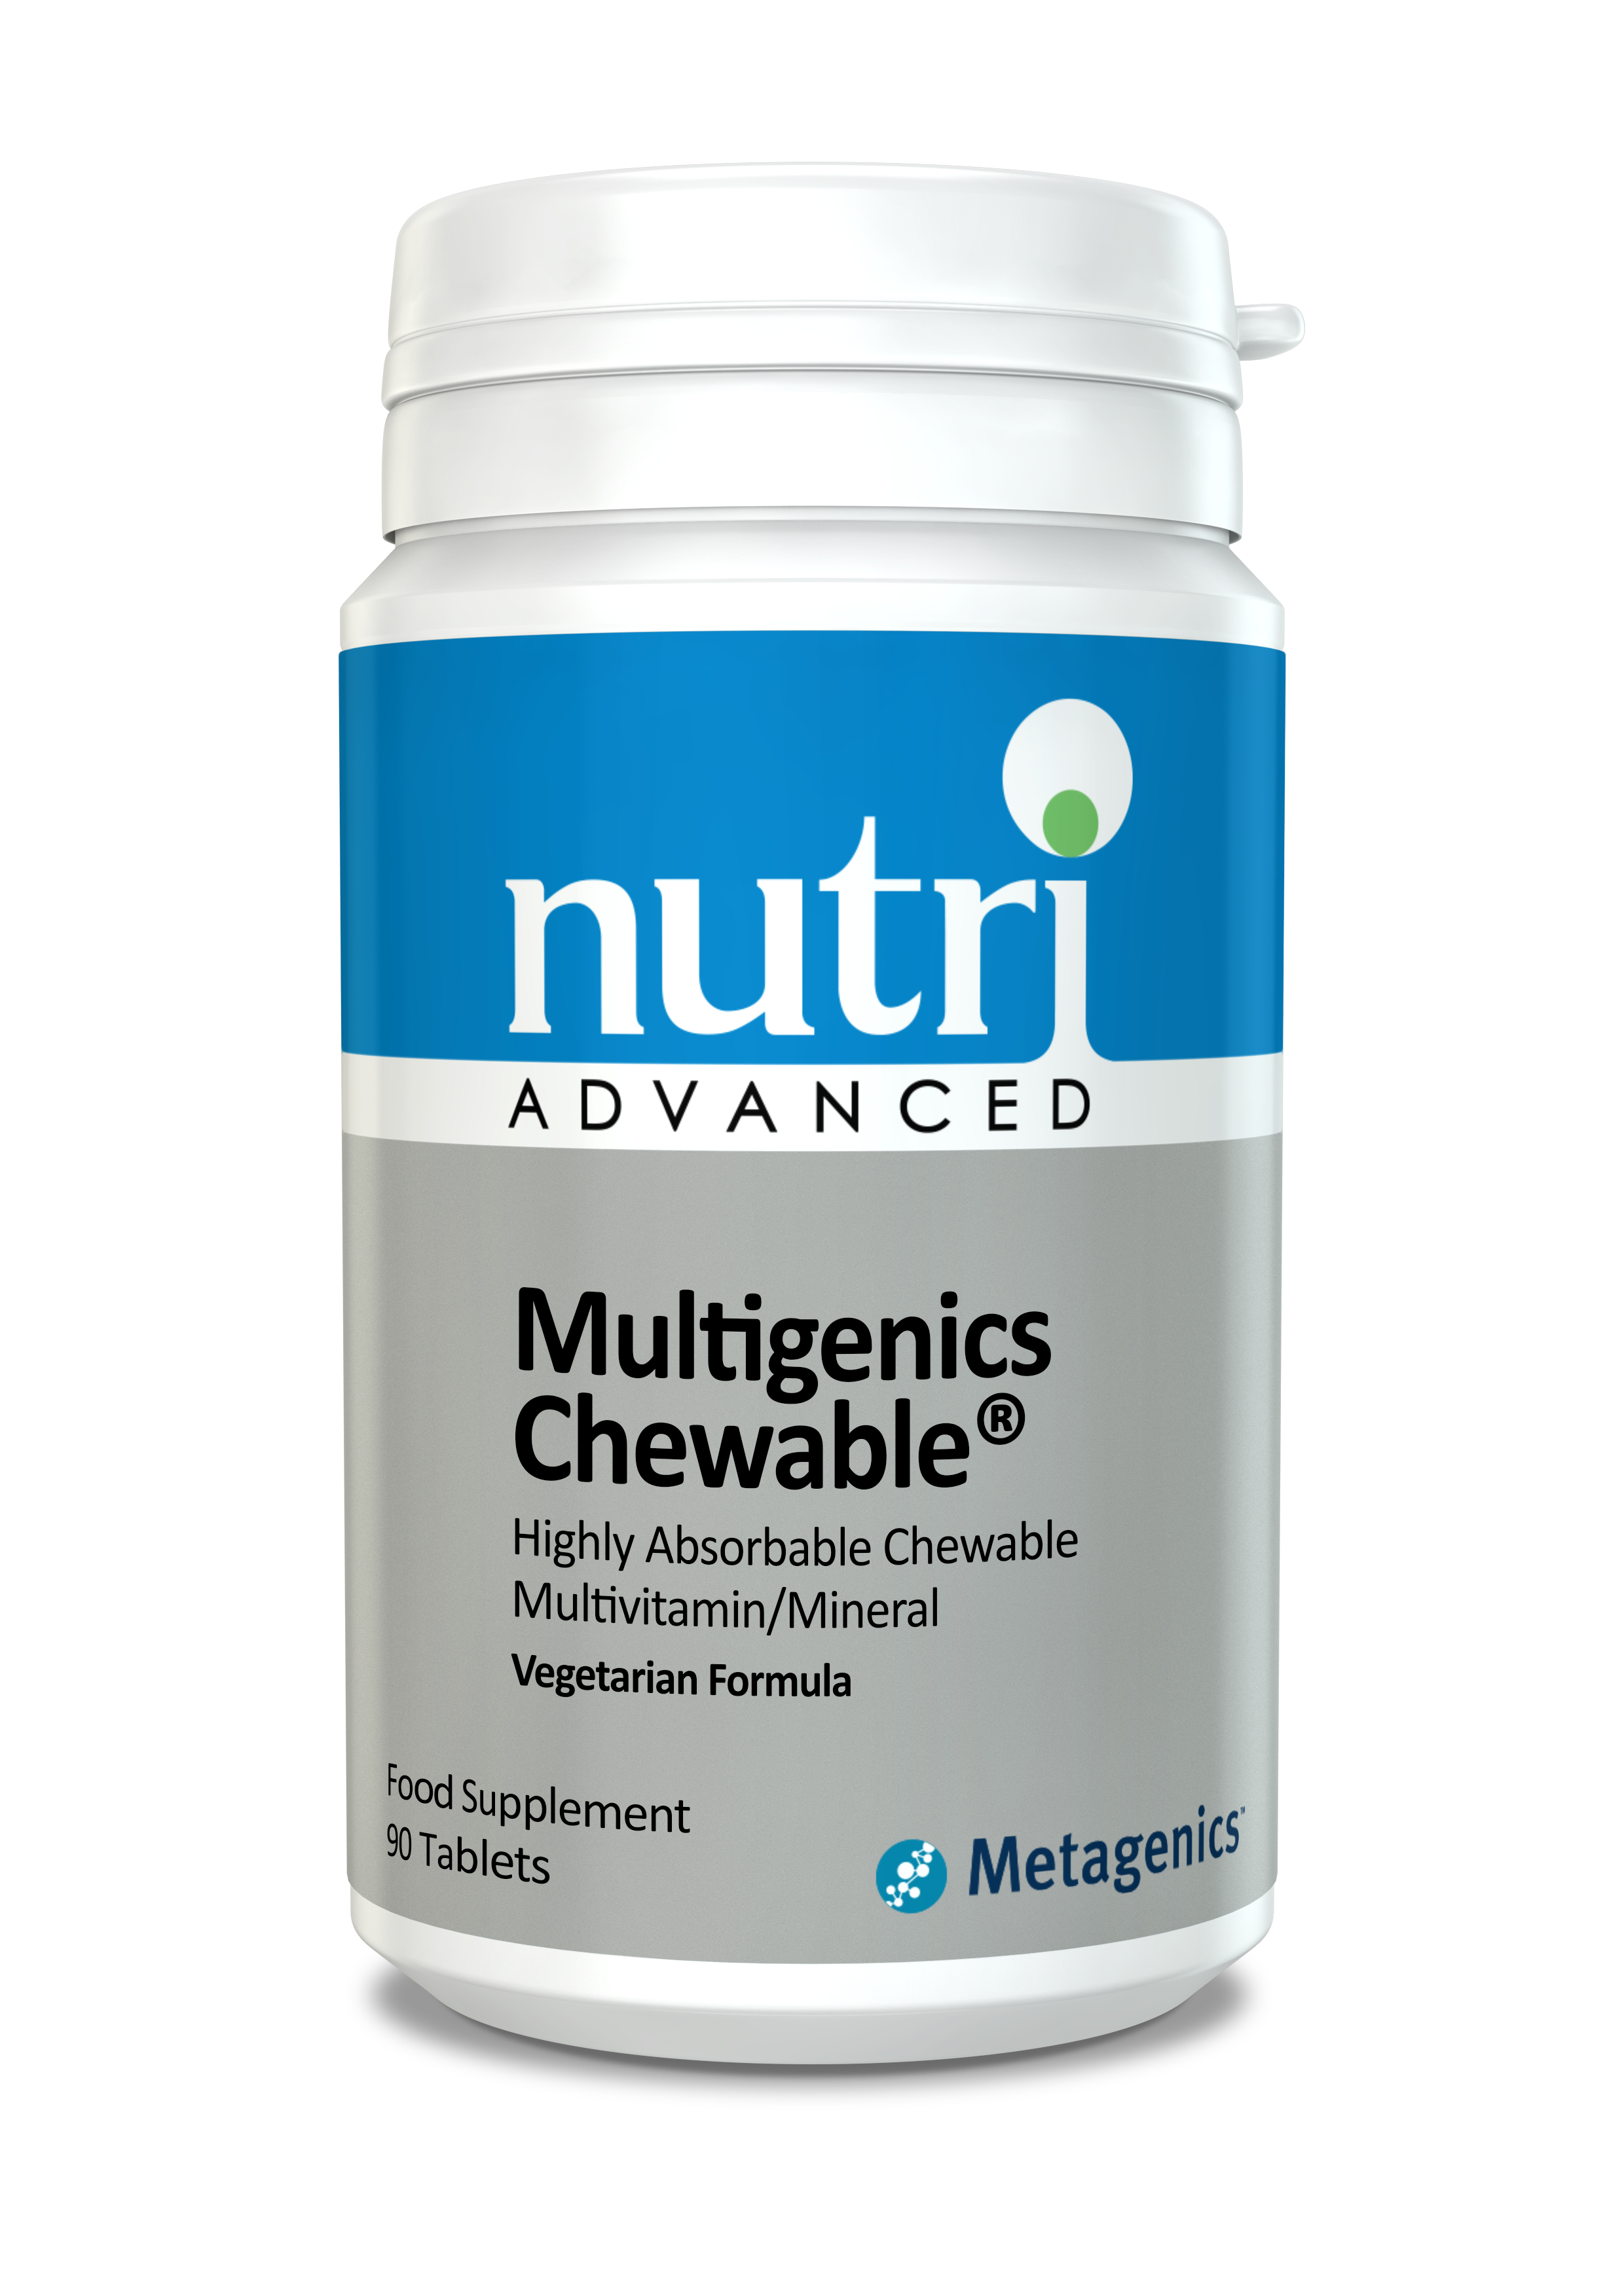 Nutri Advanced Multigenics Chewable - 90